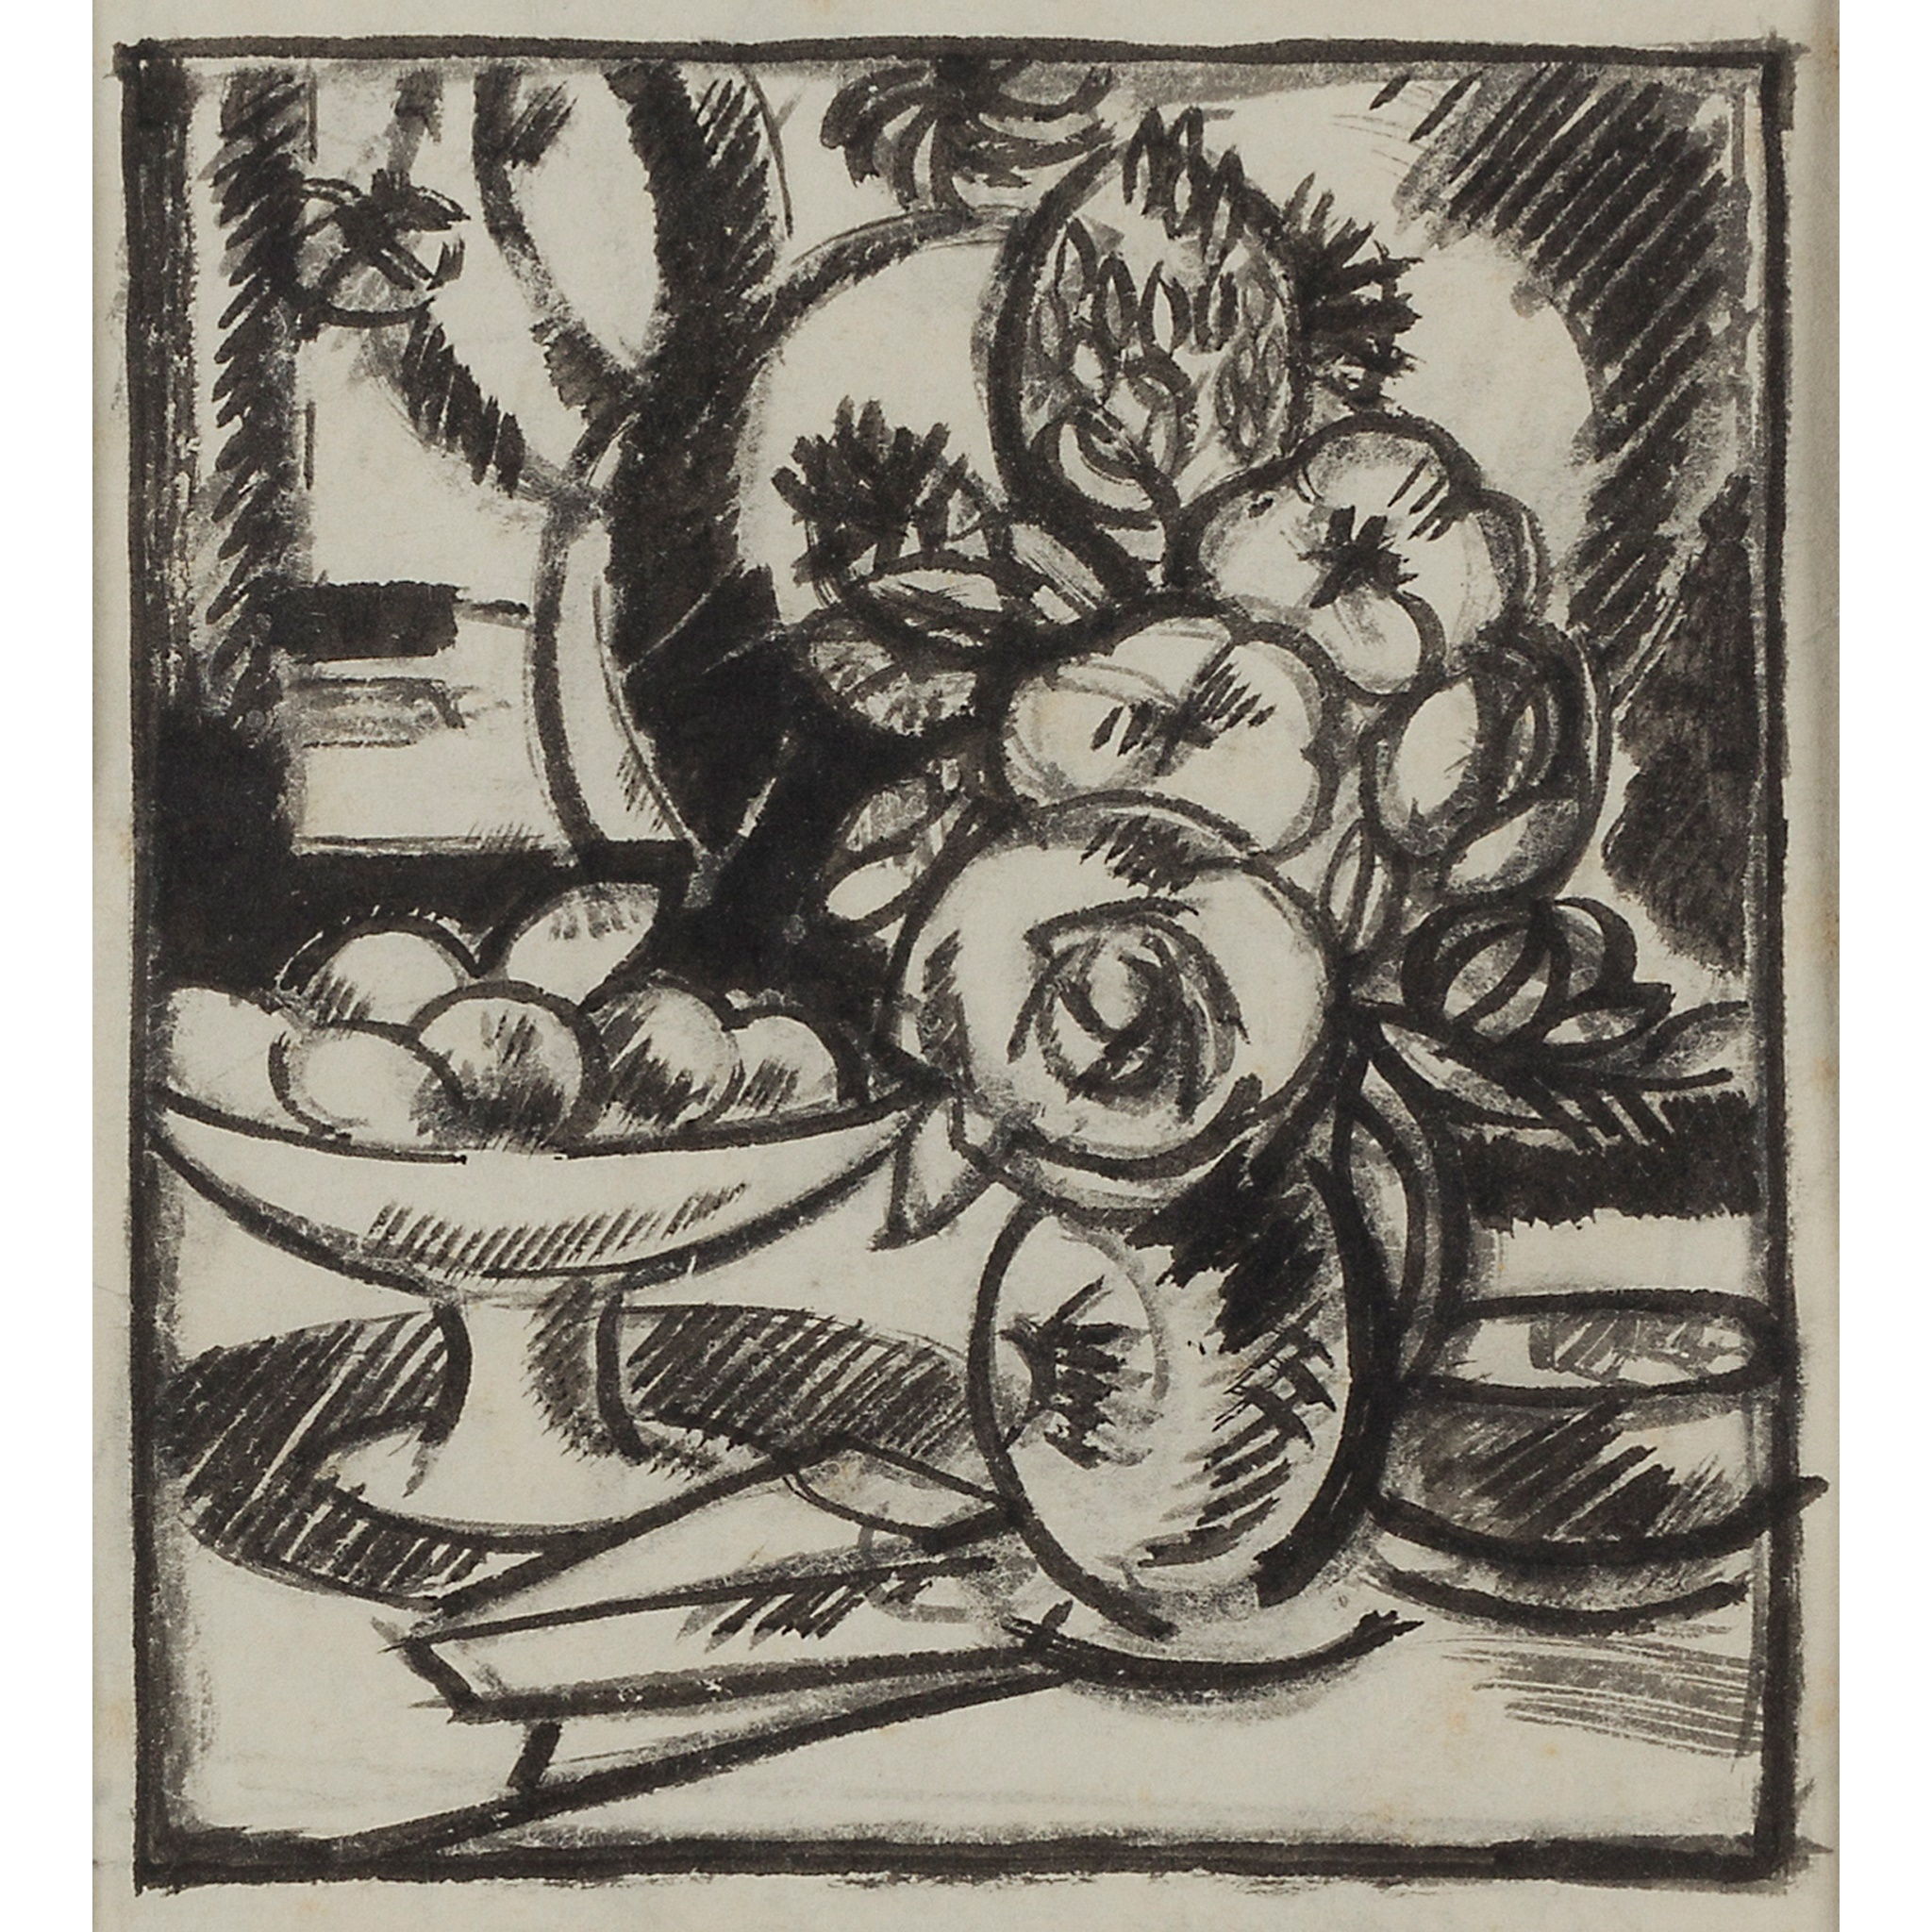 LOT 19 | § JOHN DUNCAN FERGUSSON R.B.A. (SCOTTISH 1874-1961) | FLOWERS AND FRUIT 1911 Signed verso, inscribed and dated on label verso, pen and ink and wash | 12cm x 11cm (4.75in x 4.25in) | Exhibited: Alexander Meddowes J.D.Fergusson Drawings, 2014/2015 | £2,000 - £3,000 + fees